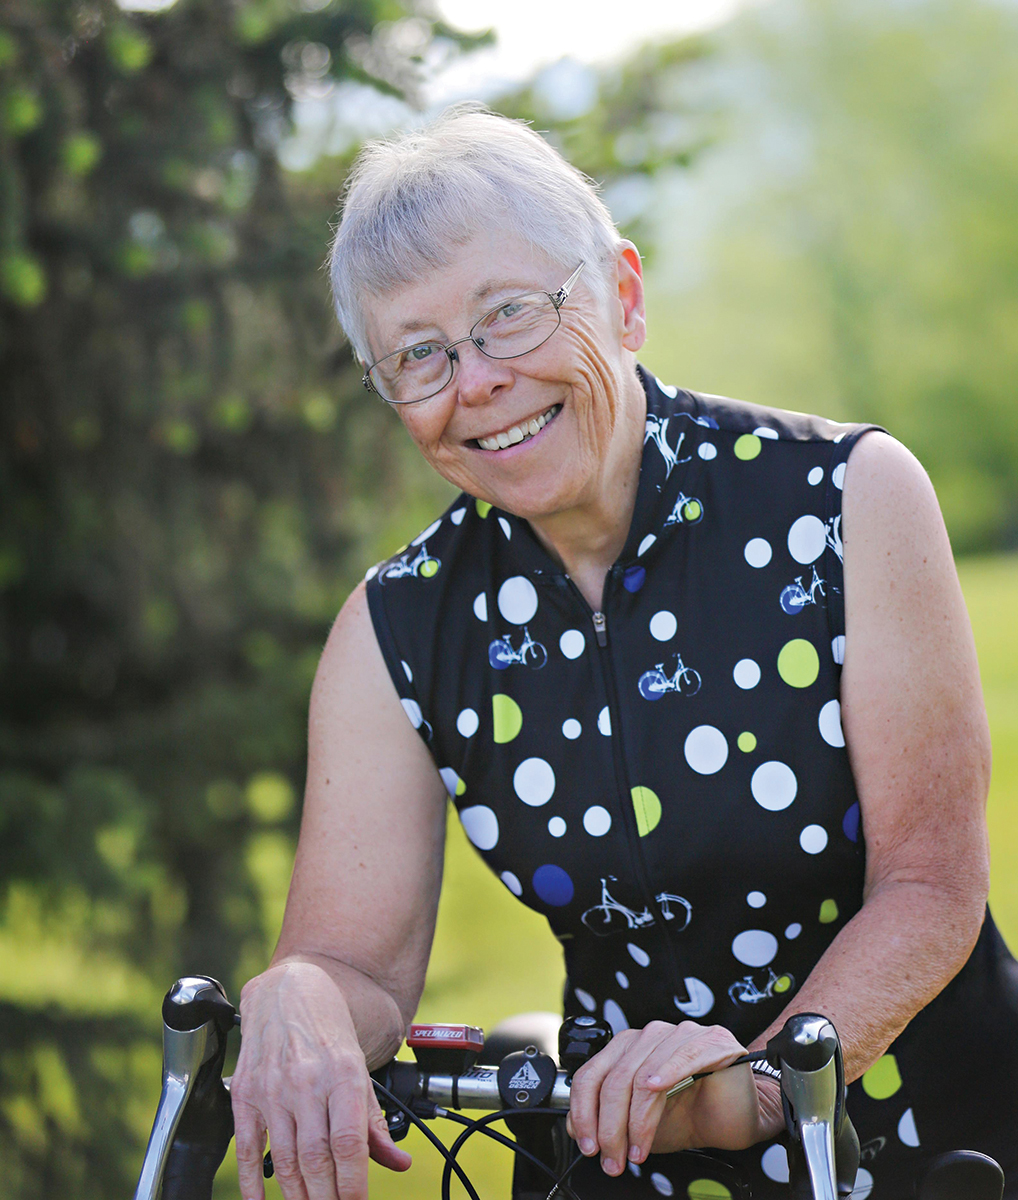 Adventure Cycling life member Fran Stagg